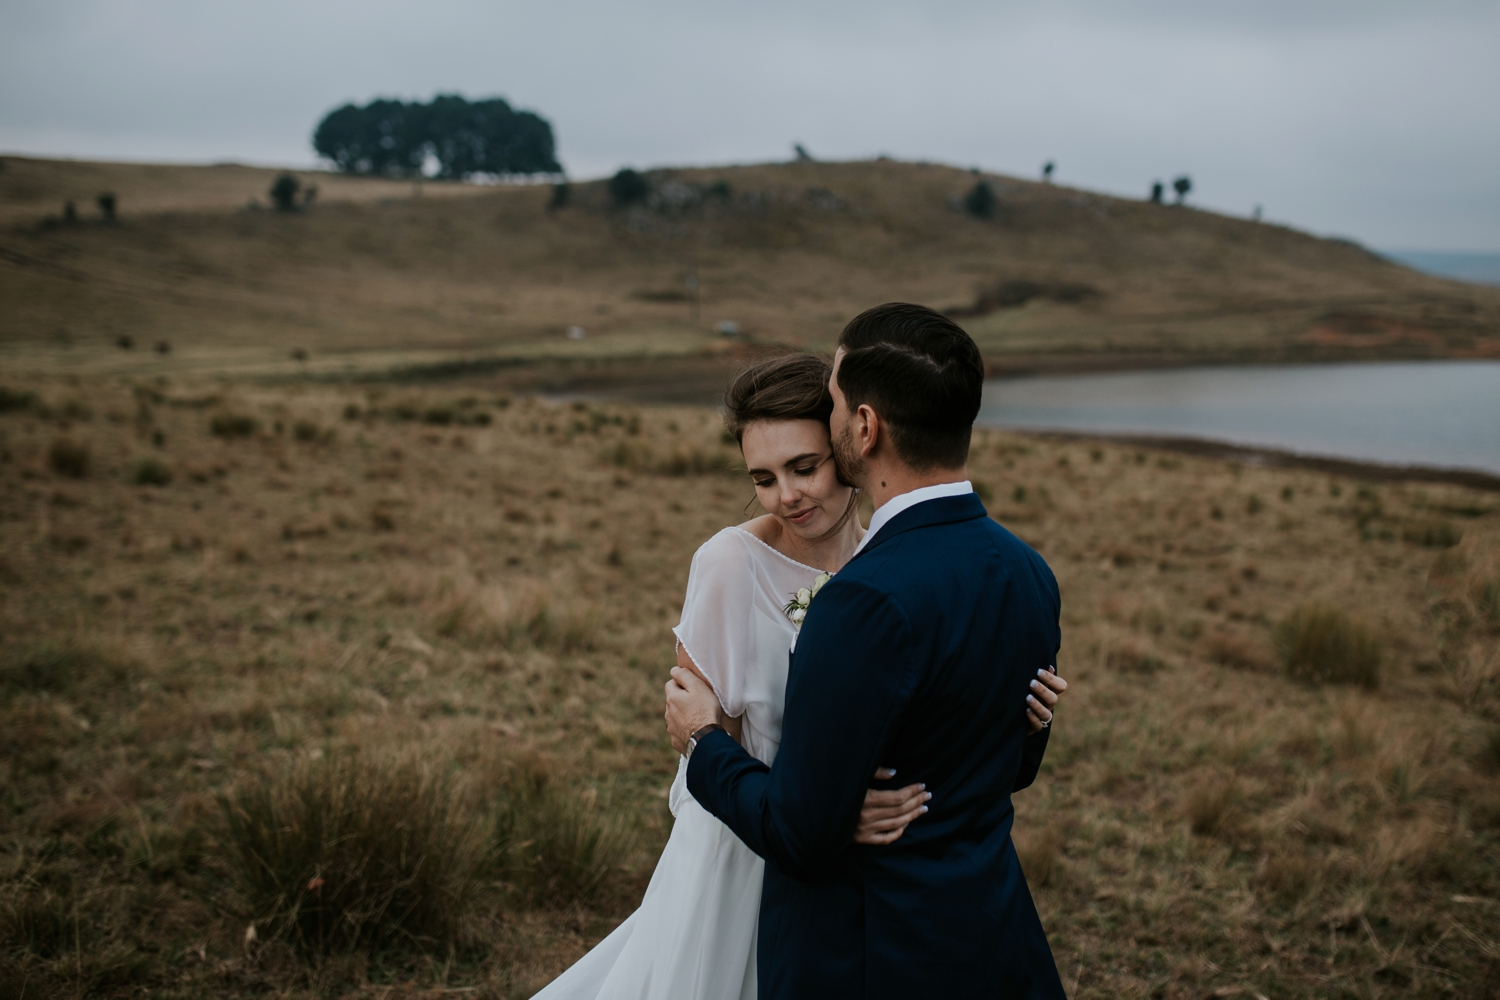 Unposed Wedding Portraits by Alternative Vancouver Wedding Photographer in Amazing Landscape